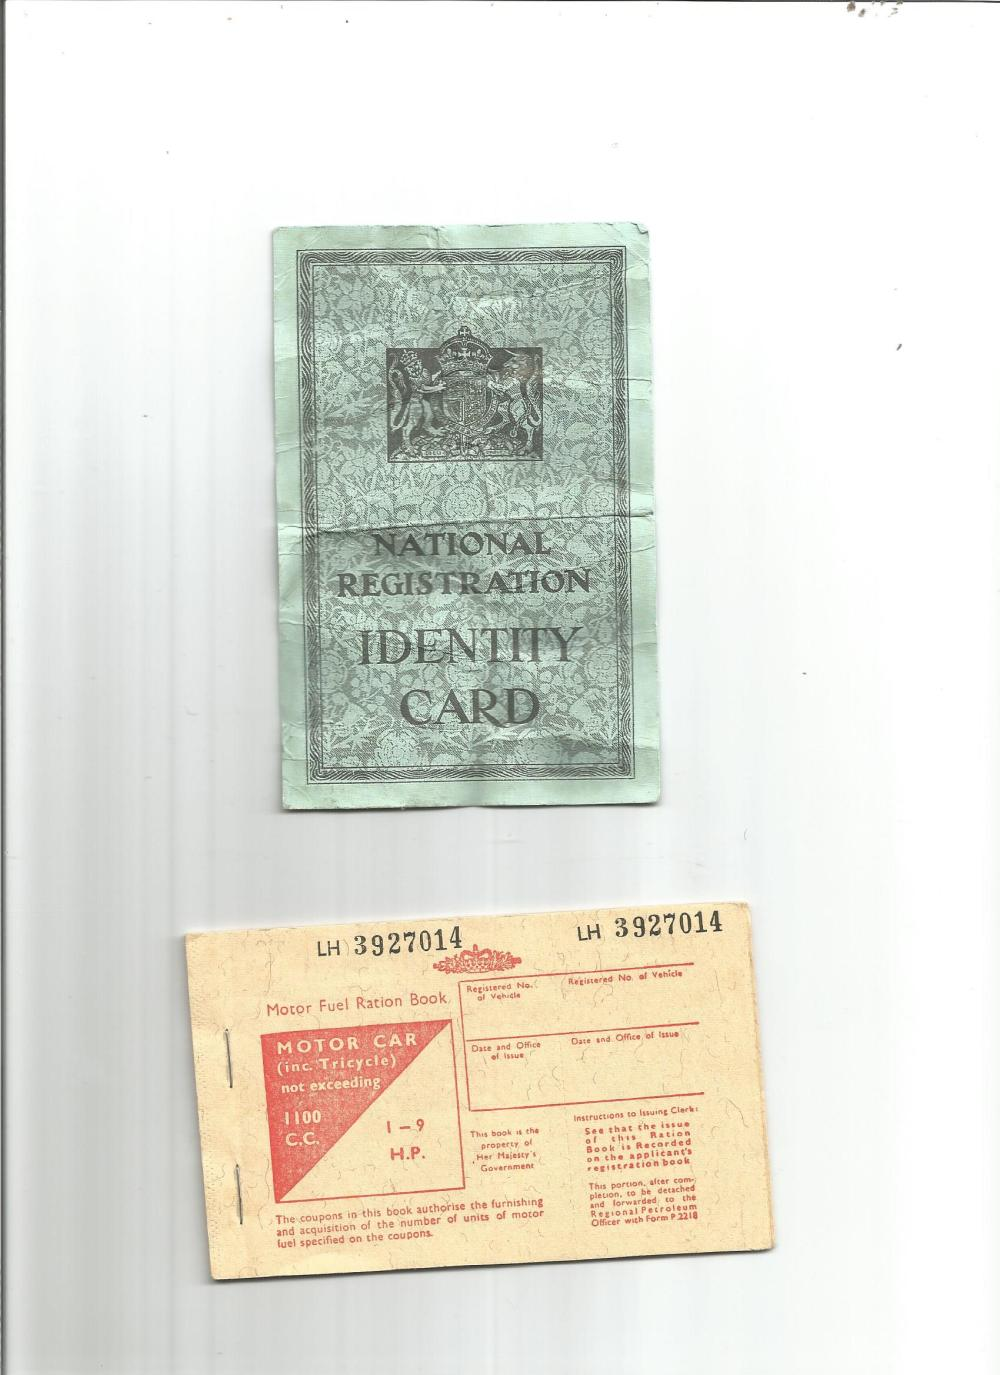 Ephemera collection. Contains a motor fuel ration pack and a national registration identity card.